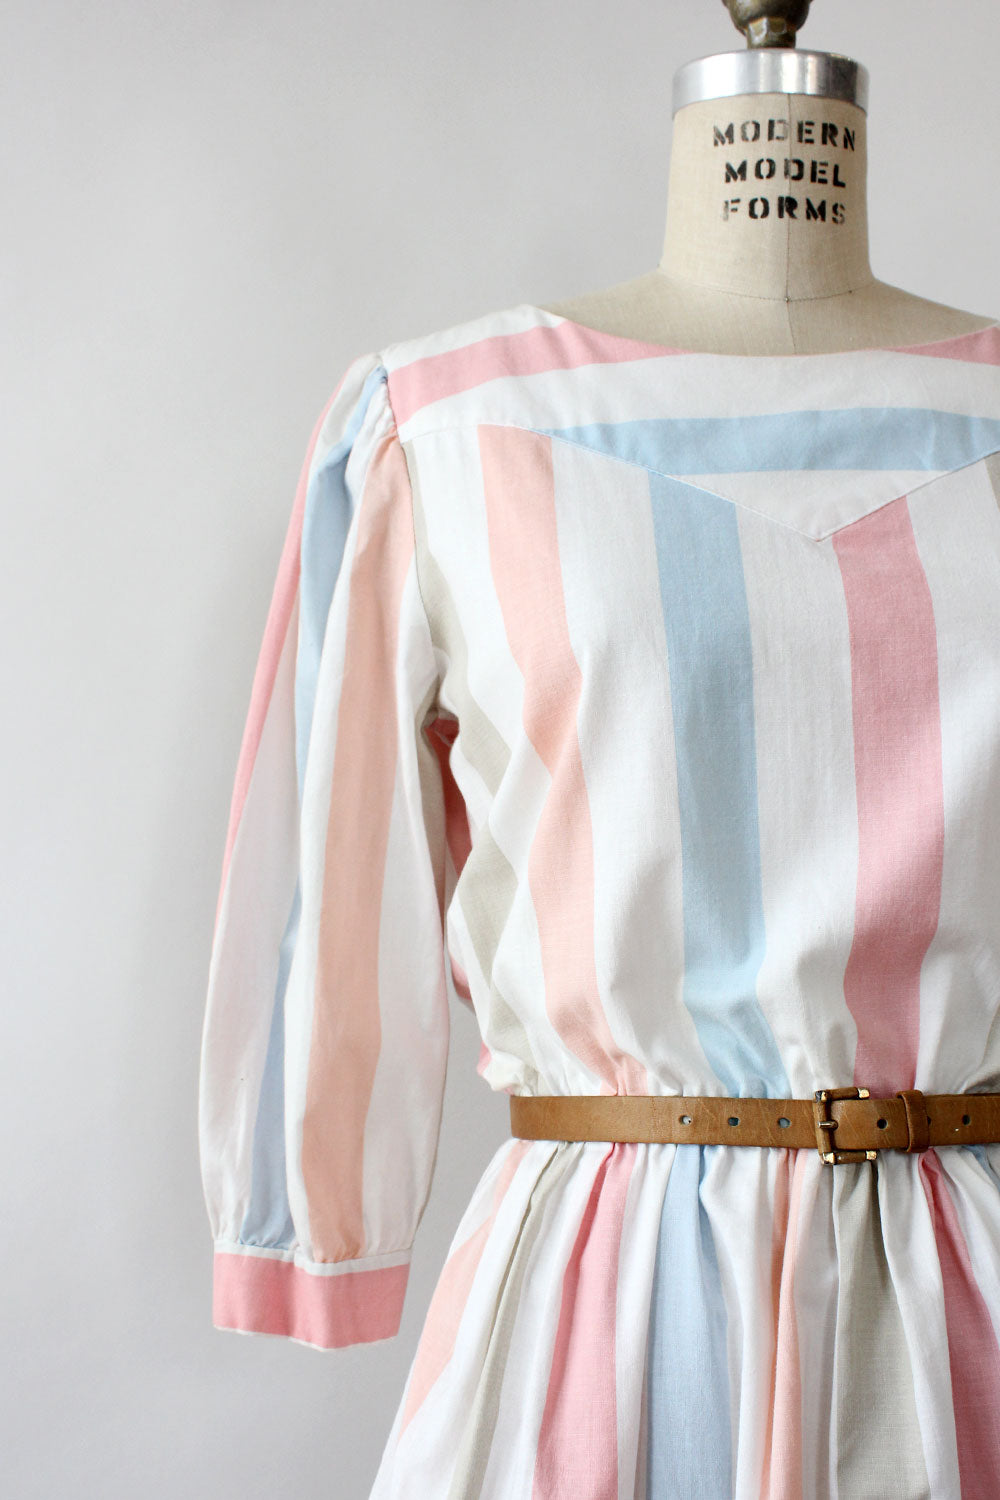 Neapolitan Stripe Cotton Dress M/L